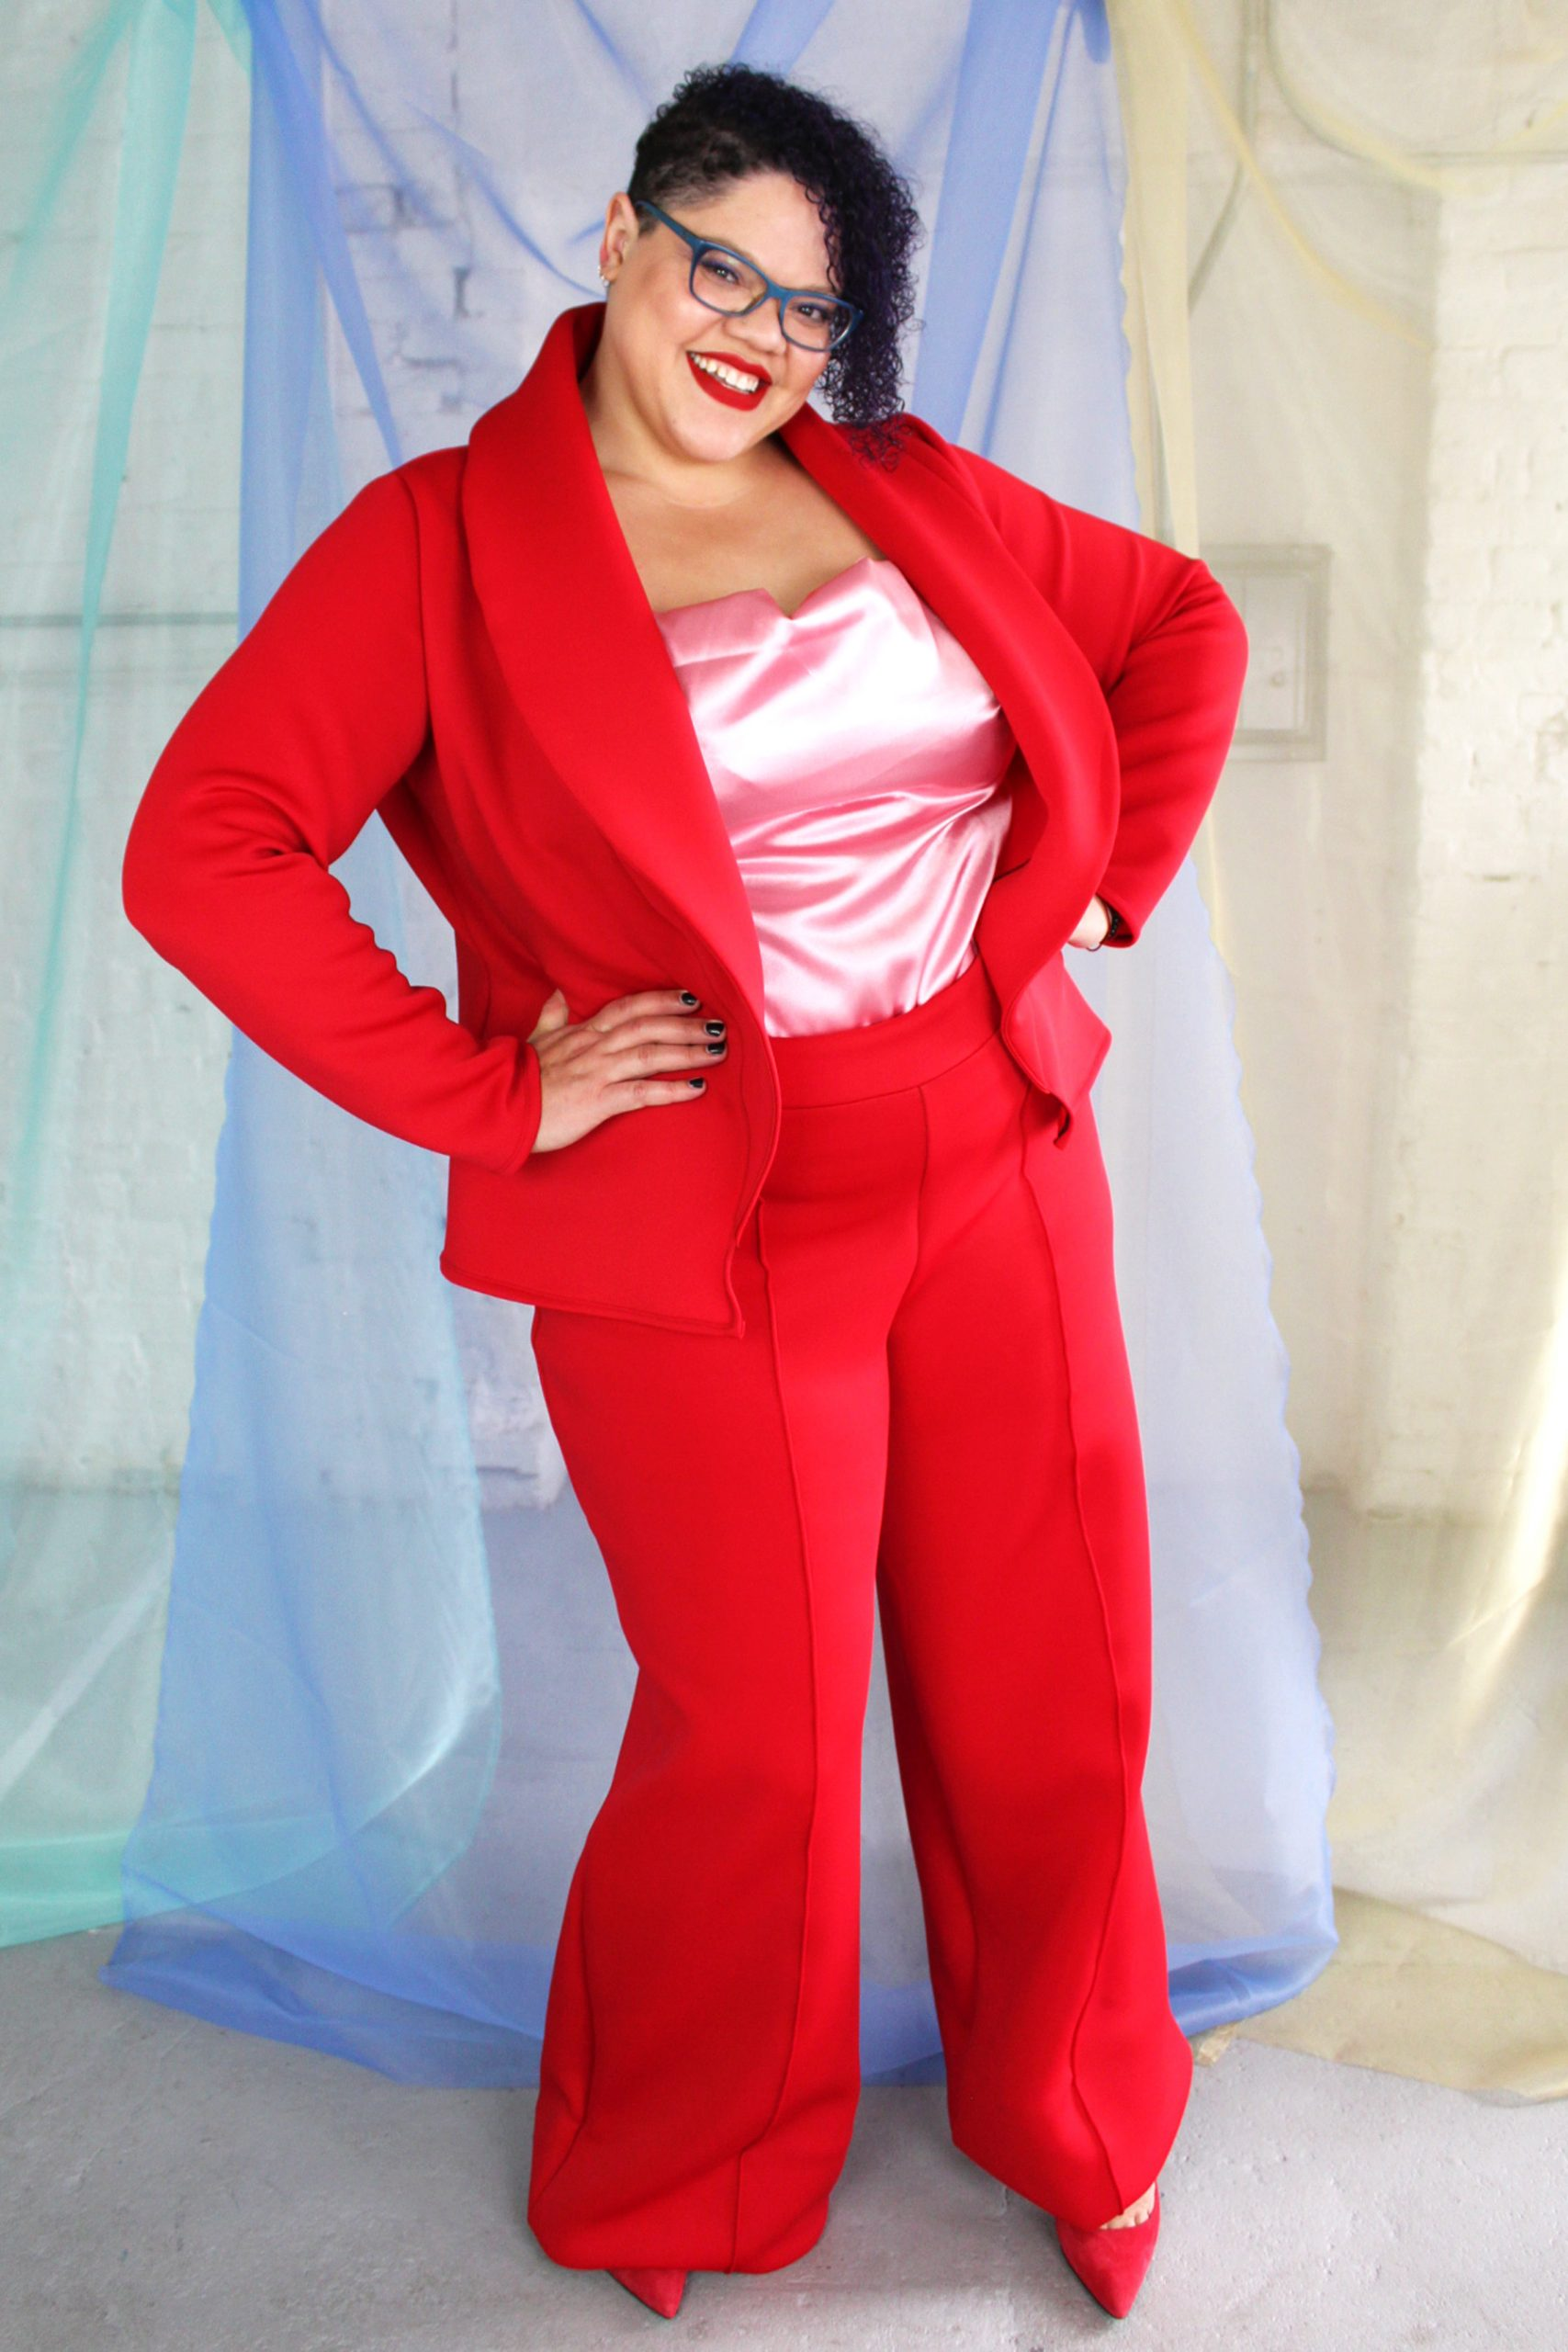 Plus size tall black model with short curly hair wearing red suit and pink satin camisole, ethically handmade in NYC